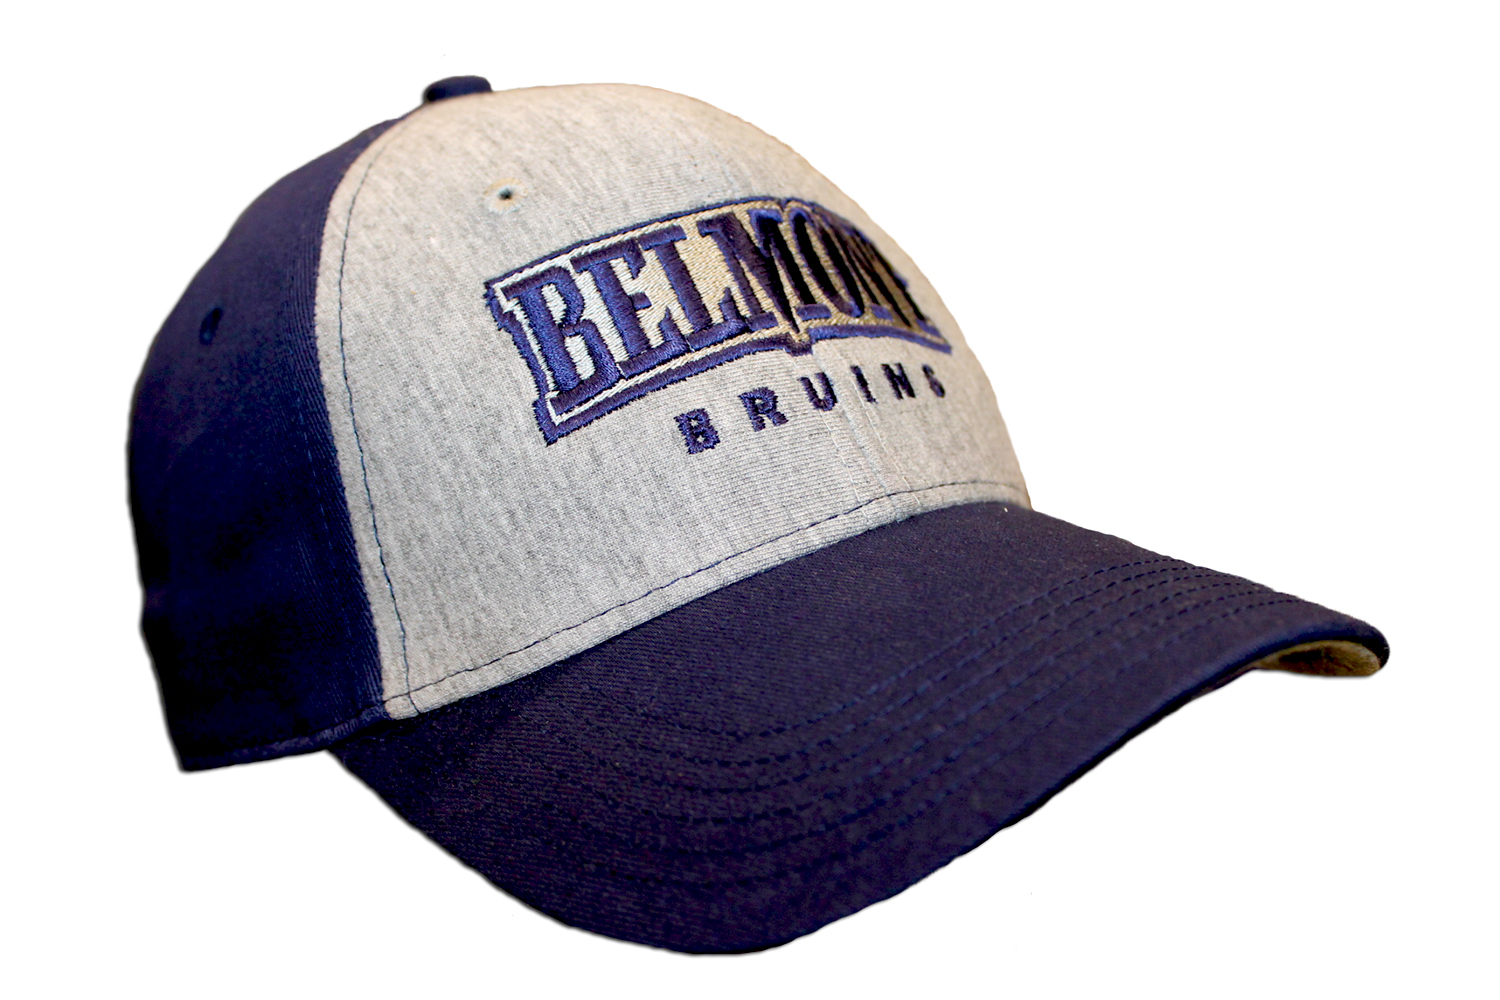 Image For BRUINS JERSEY CAP (B2258)